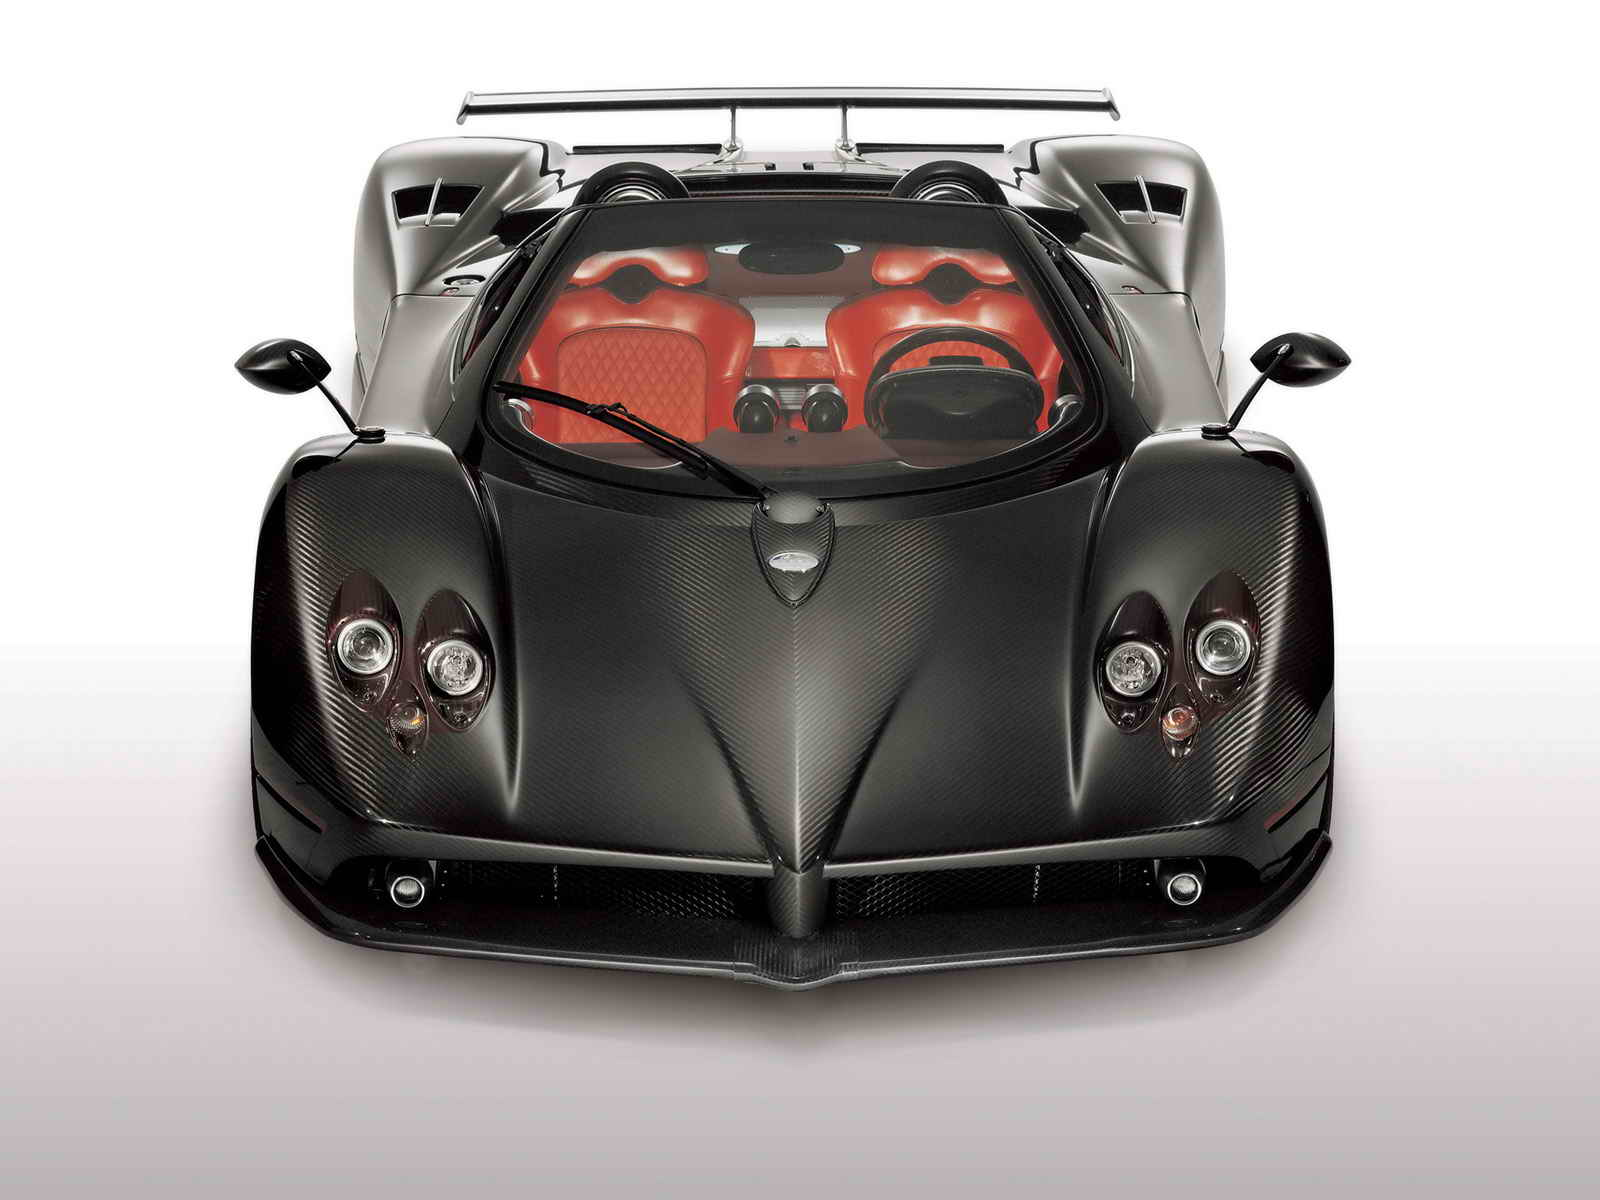 2006 pagani zonda roadster f review gallery top speed pagani automobili is proud to unveil the roadster f a new jewel in the zonda family fast open top motoring at its best vanachro Gallery